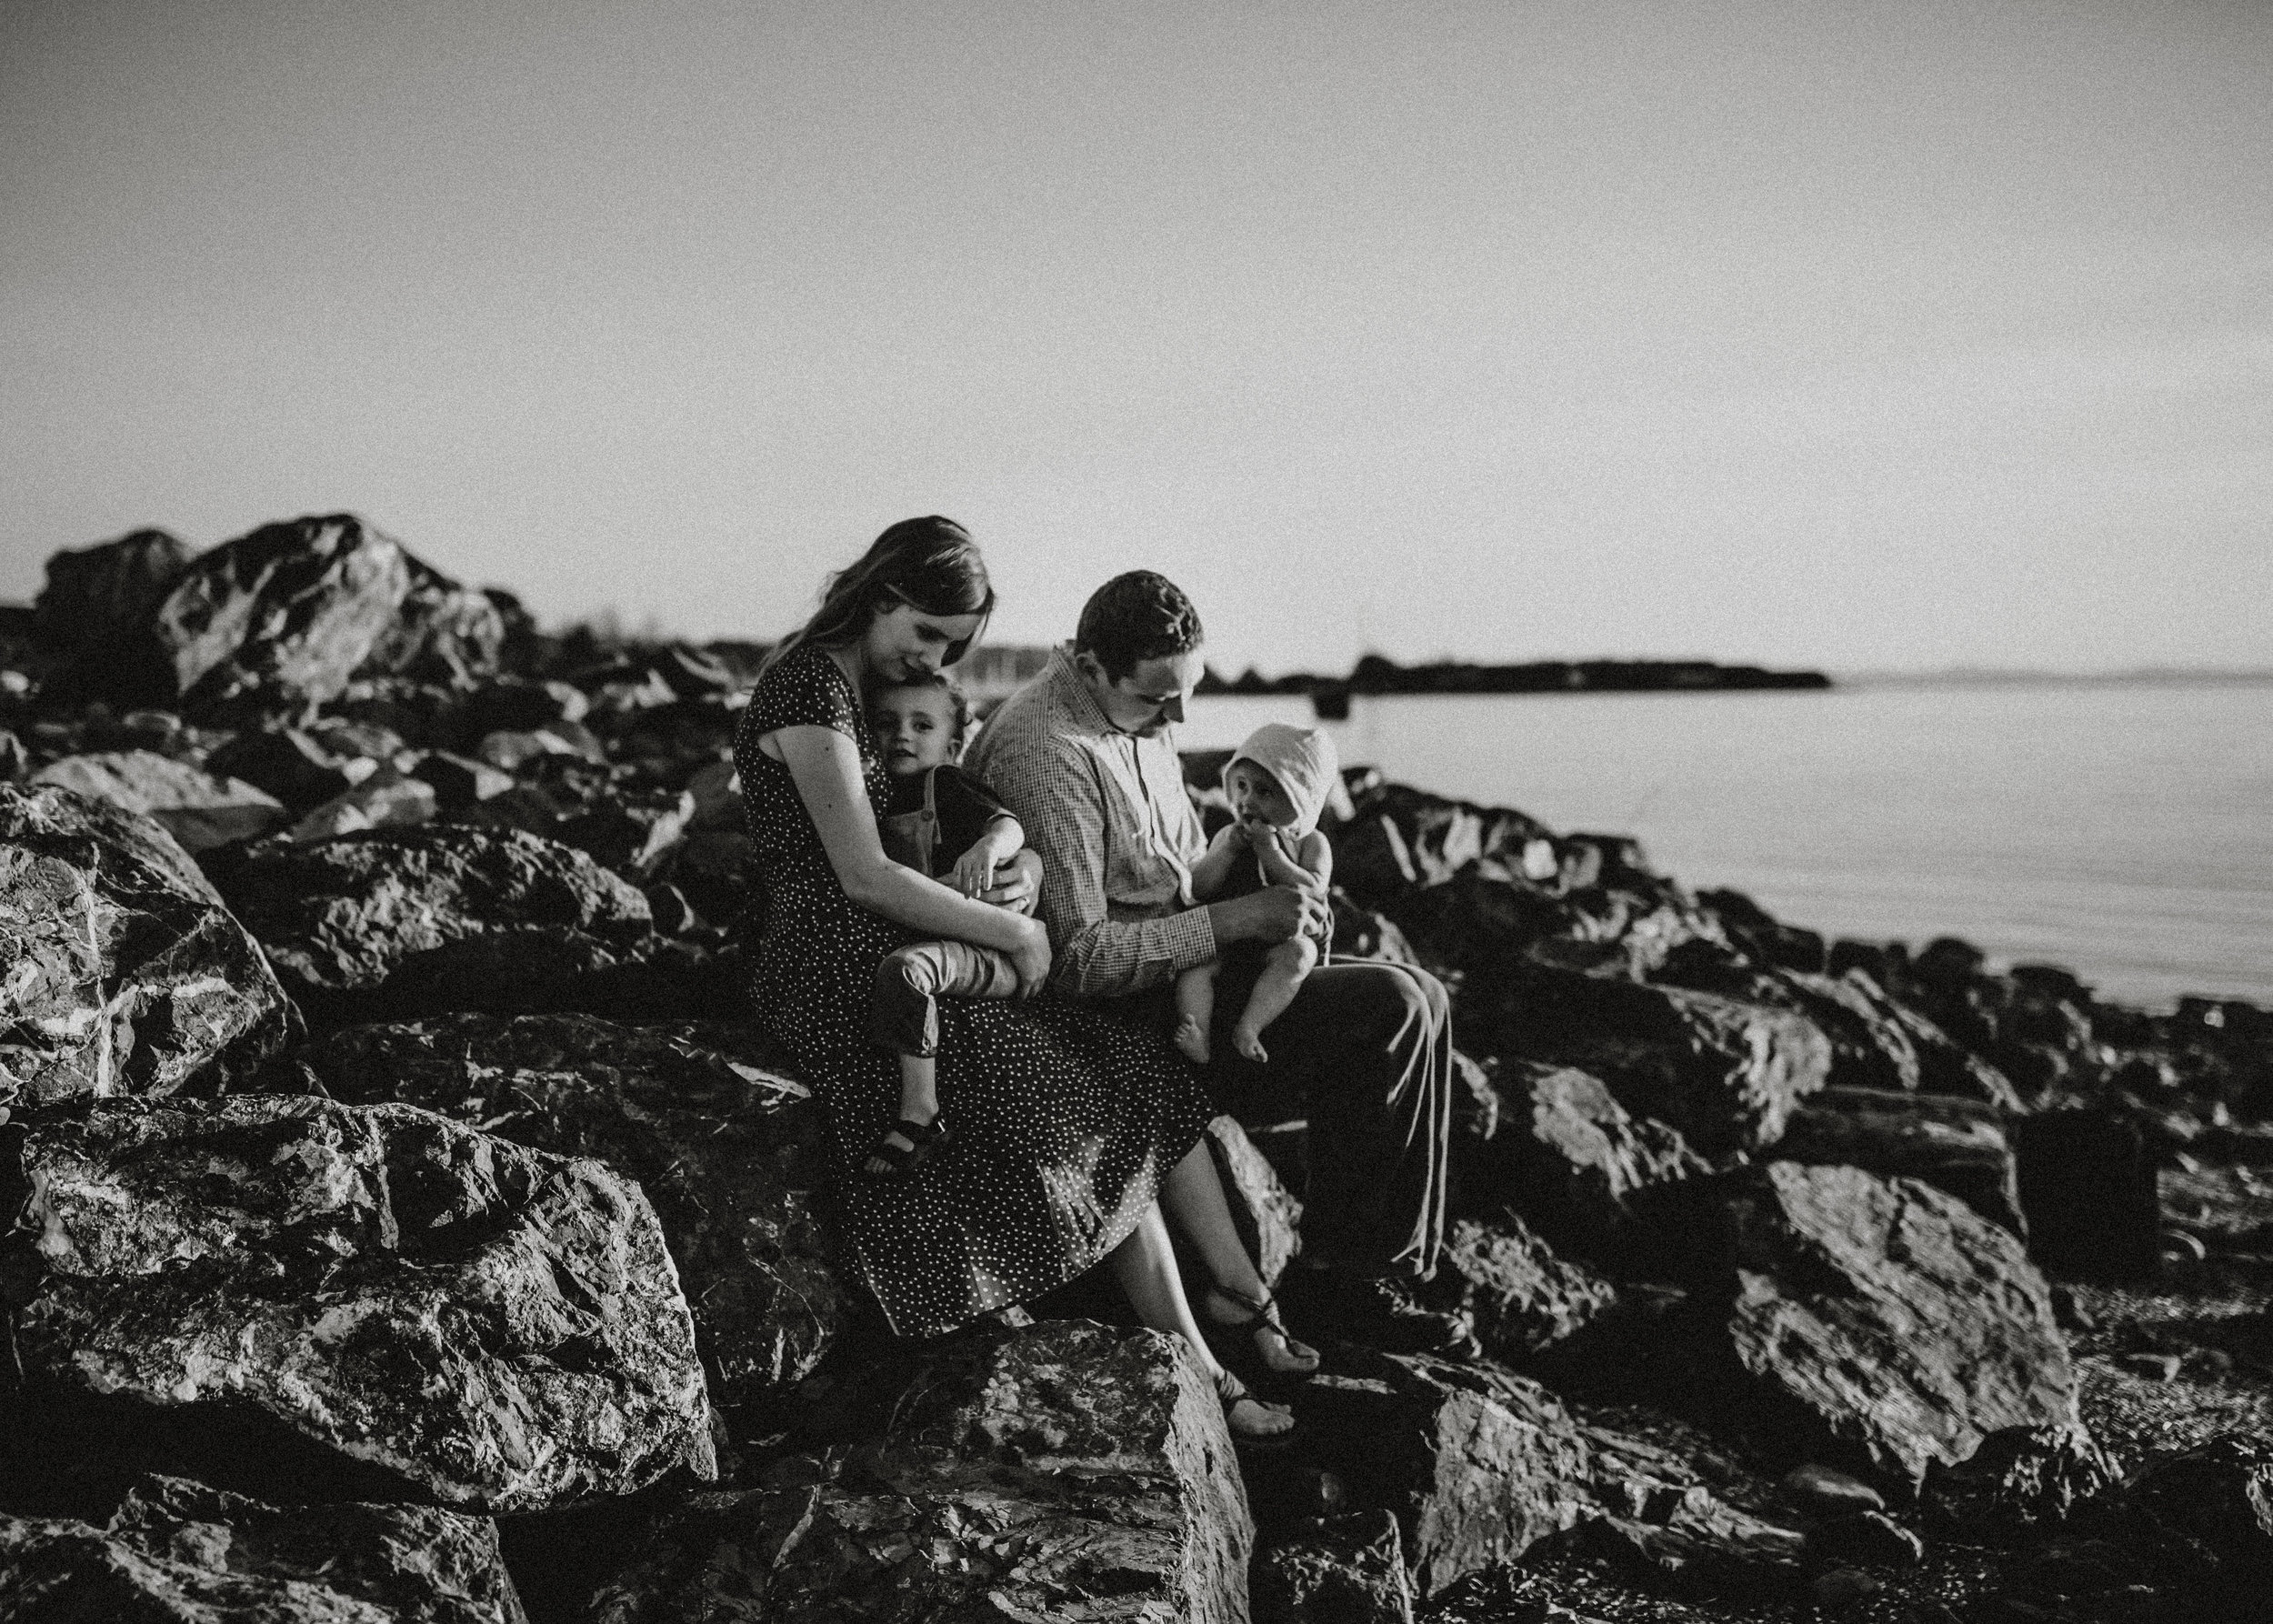 Family-Photographer-Bellingham-WA-Brianne-Bell-Photograpy-(Andrea)-35.jpg